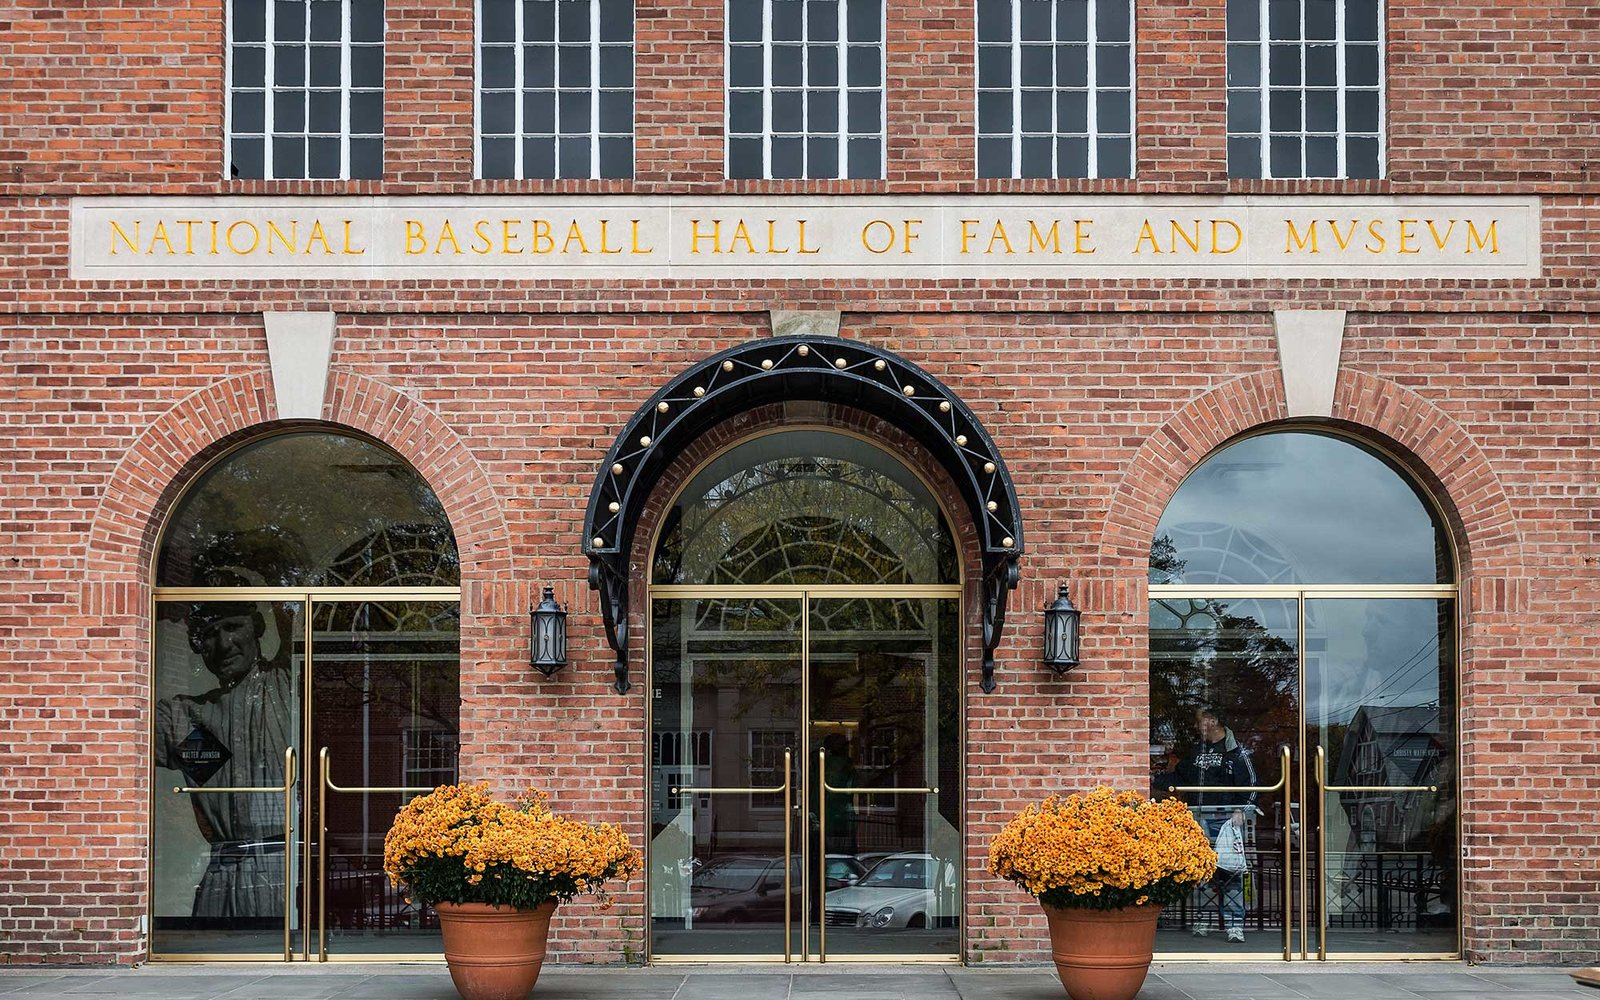 COOPERSTOWN, NEW YORK, UNITED STATES - 2014/10/19: National Baseball Hall of Fame and Museum. (Photo by John Greim/LightRocket via Getty Images)